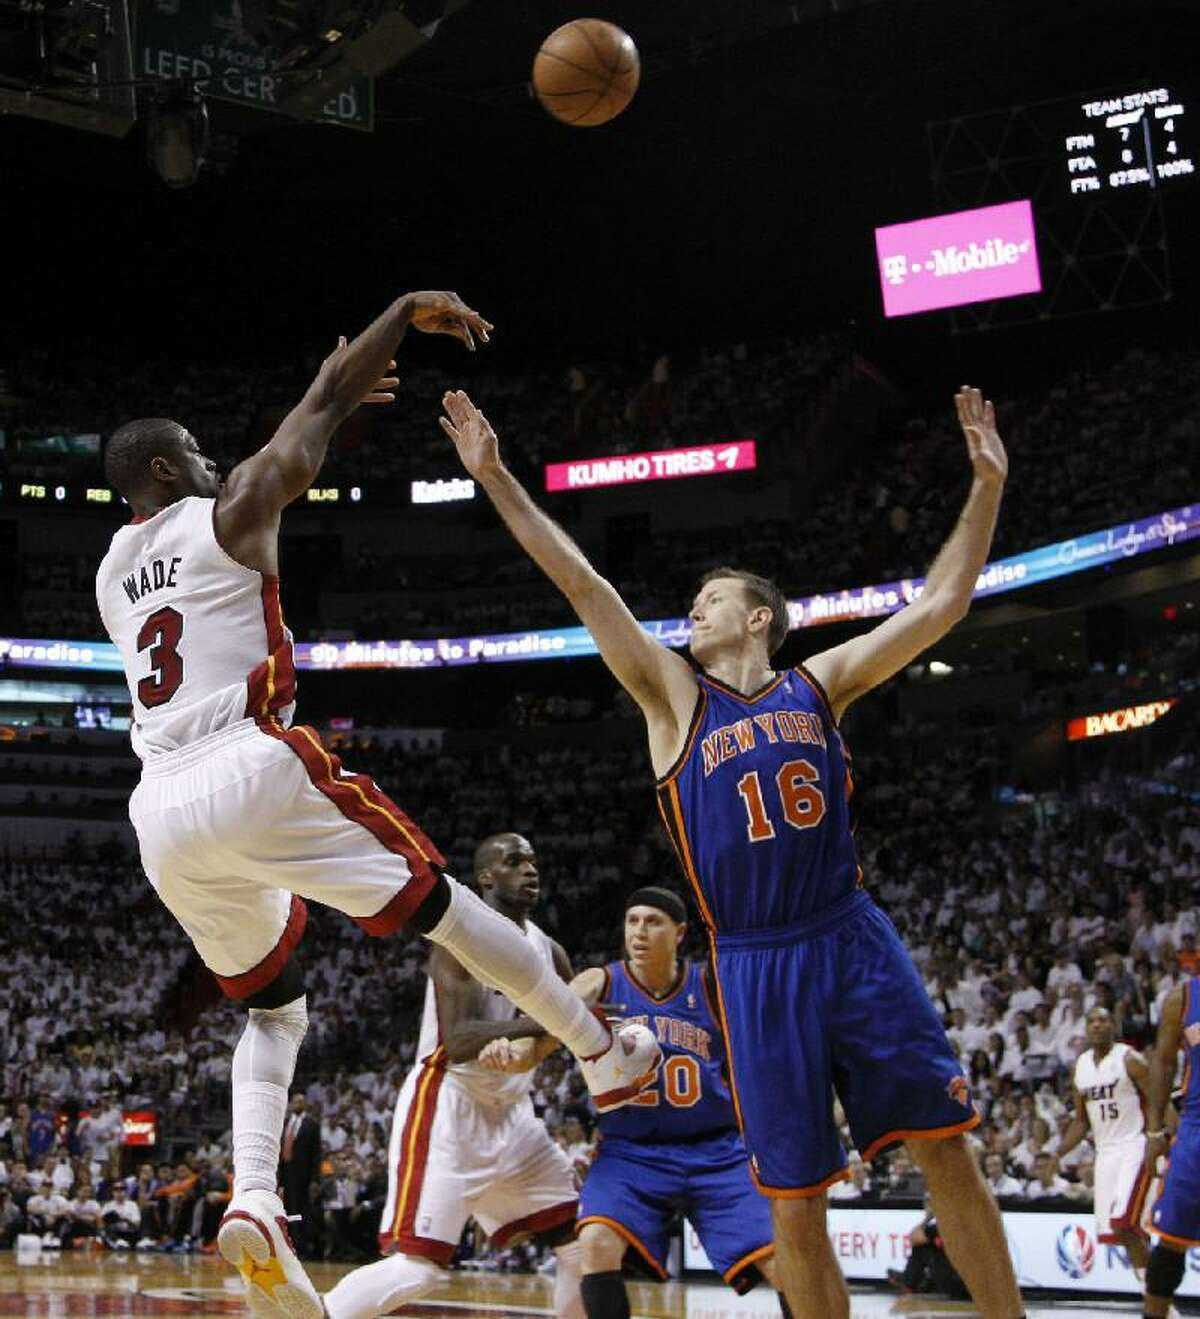 ASSOCIATED PRESS Miami Heat guard Dwyane Wade (3) shoots over New York Knicks forward Steve Novak (16) in the first half of Game 1 of their first round NBA playoff series in Miami, Saturday. The Heat won the game 100-67.